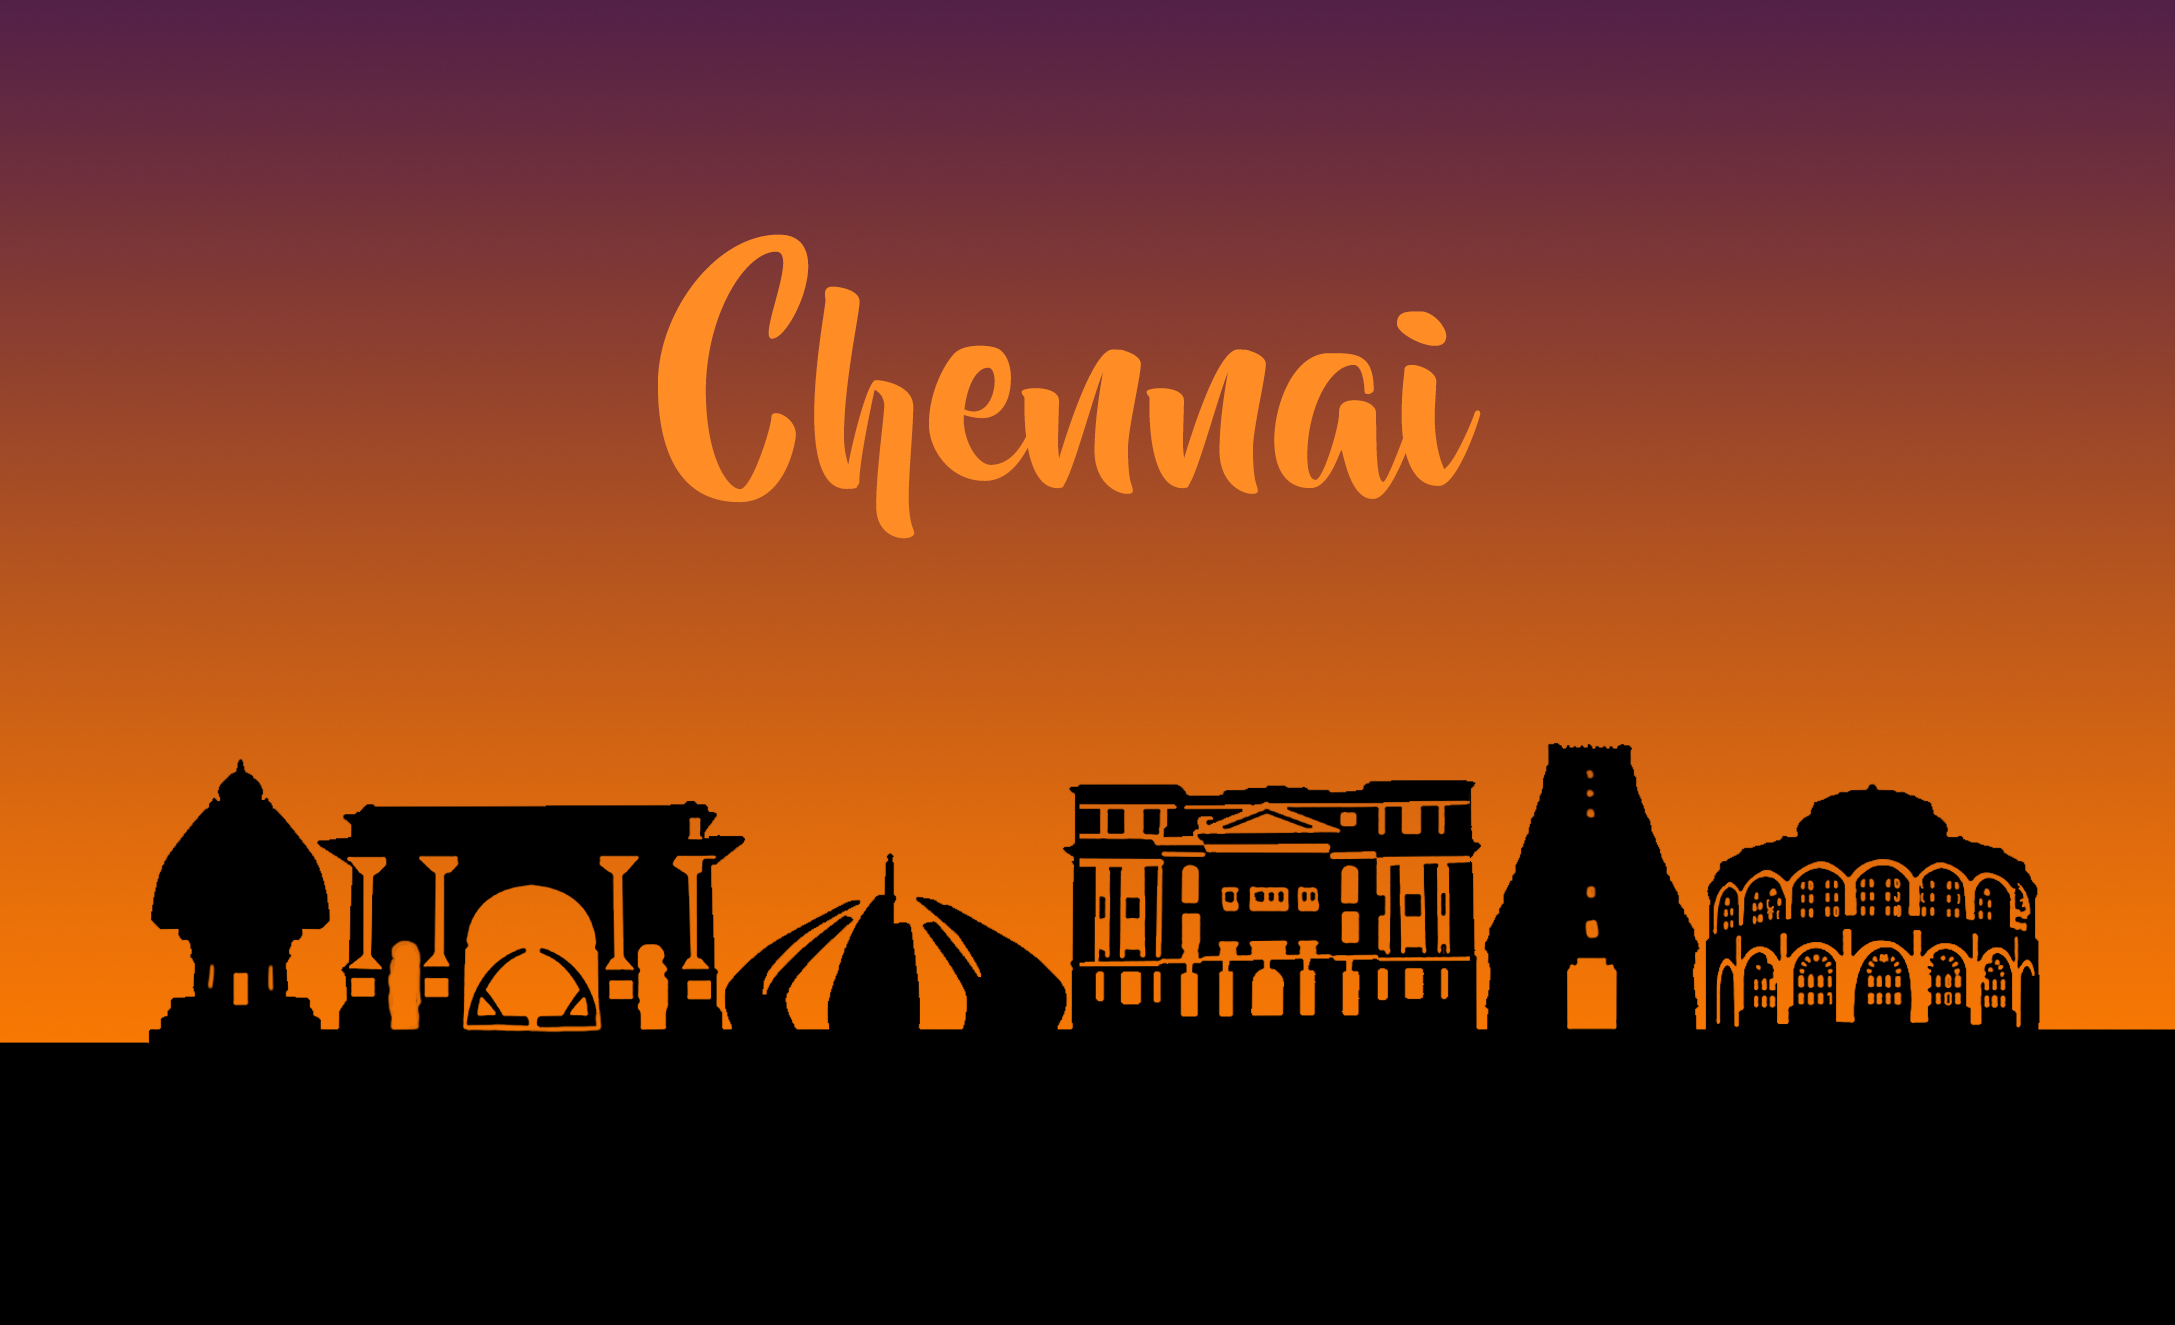 What do you make of Chennai?